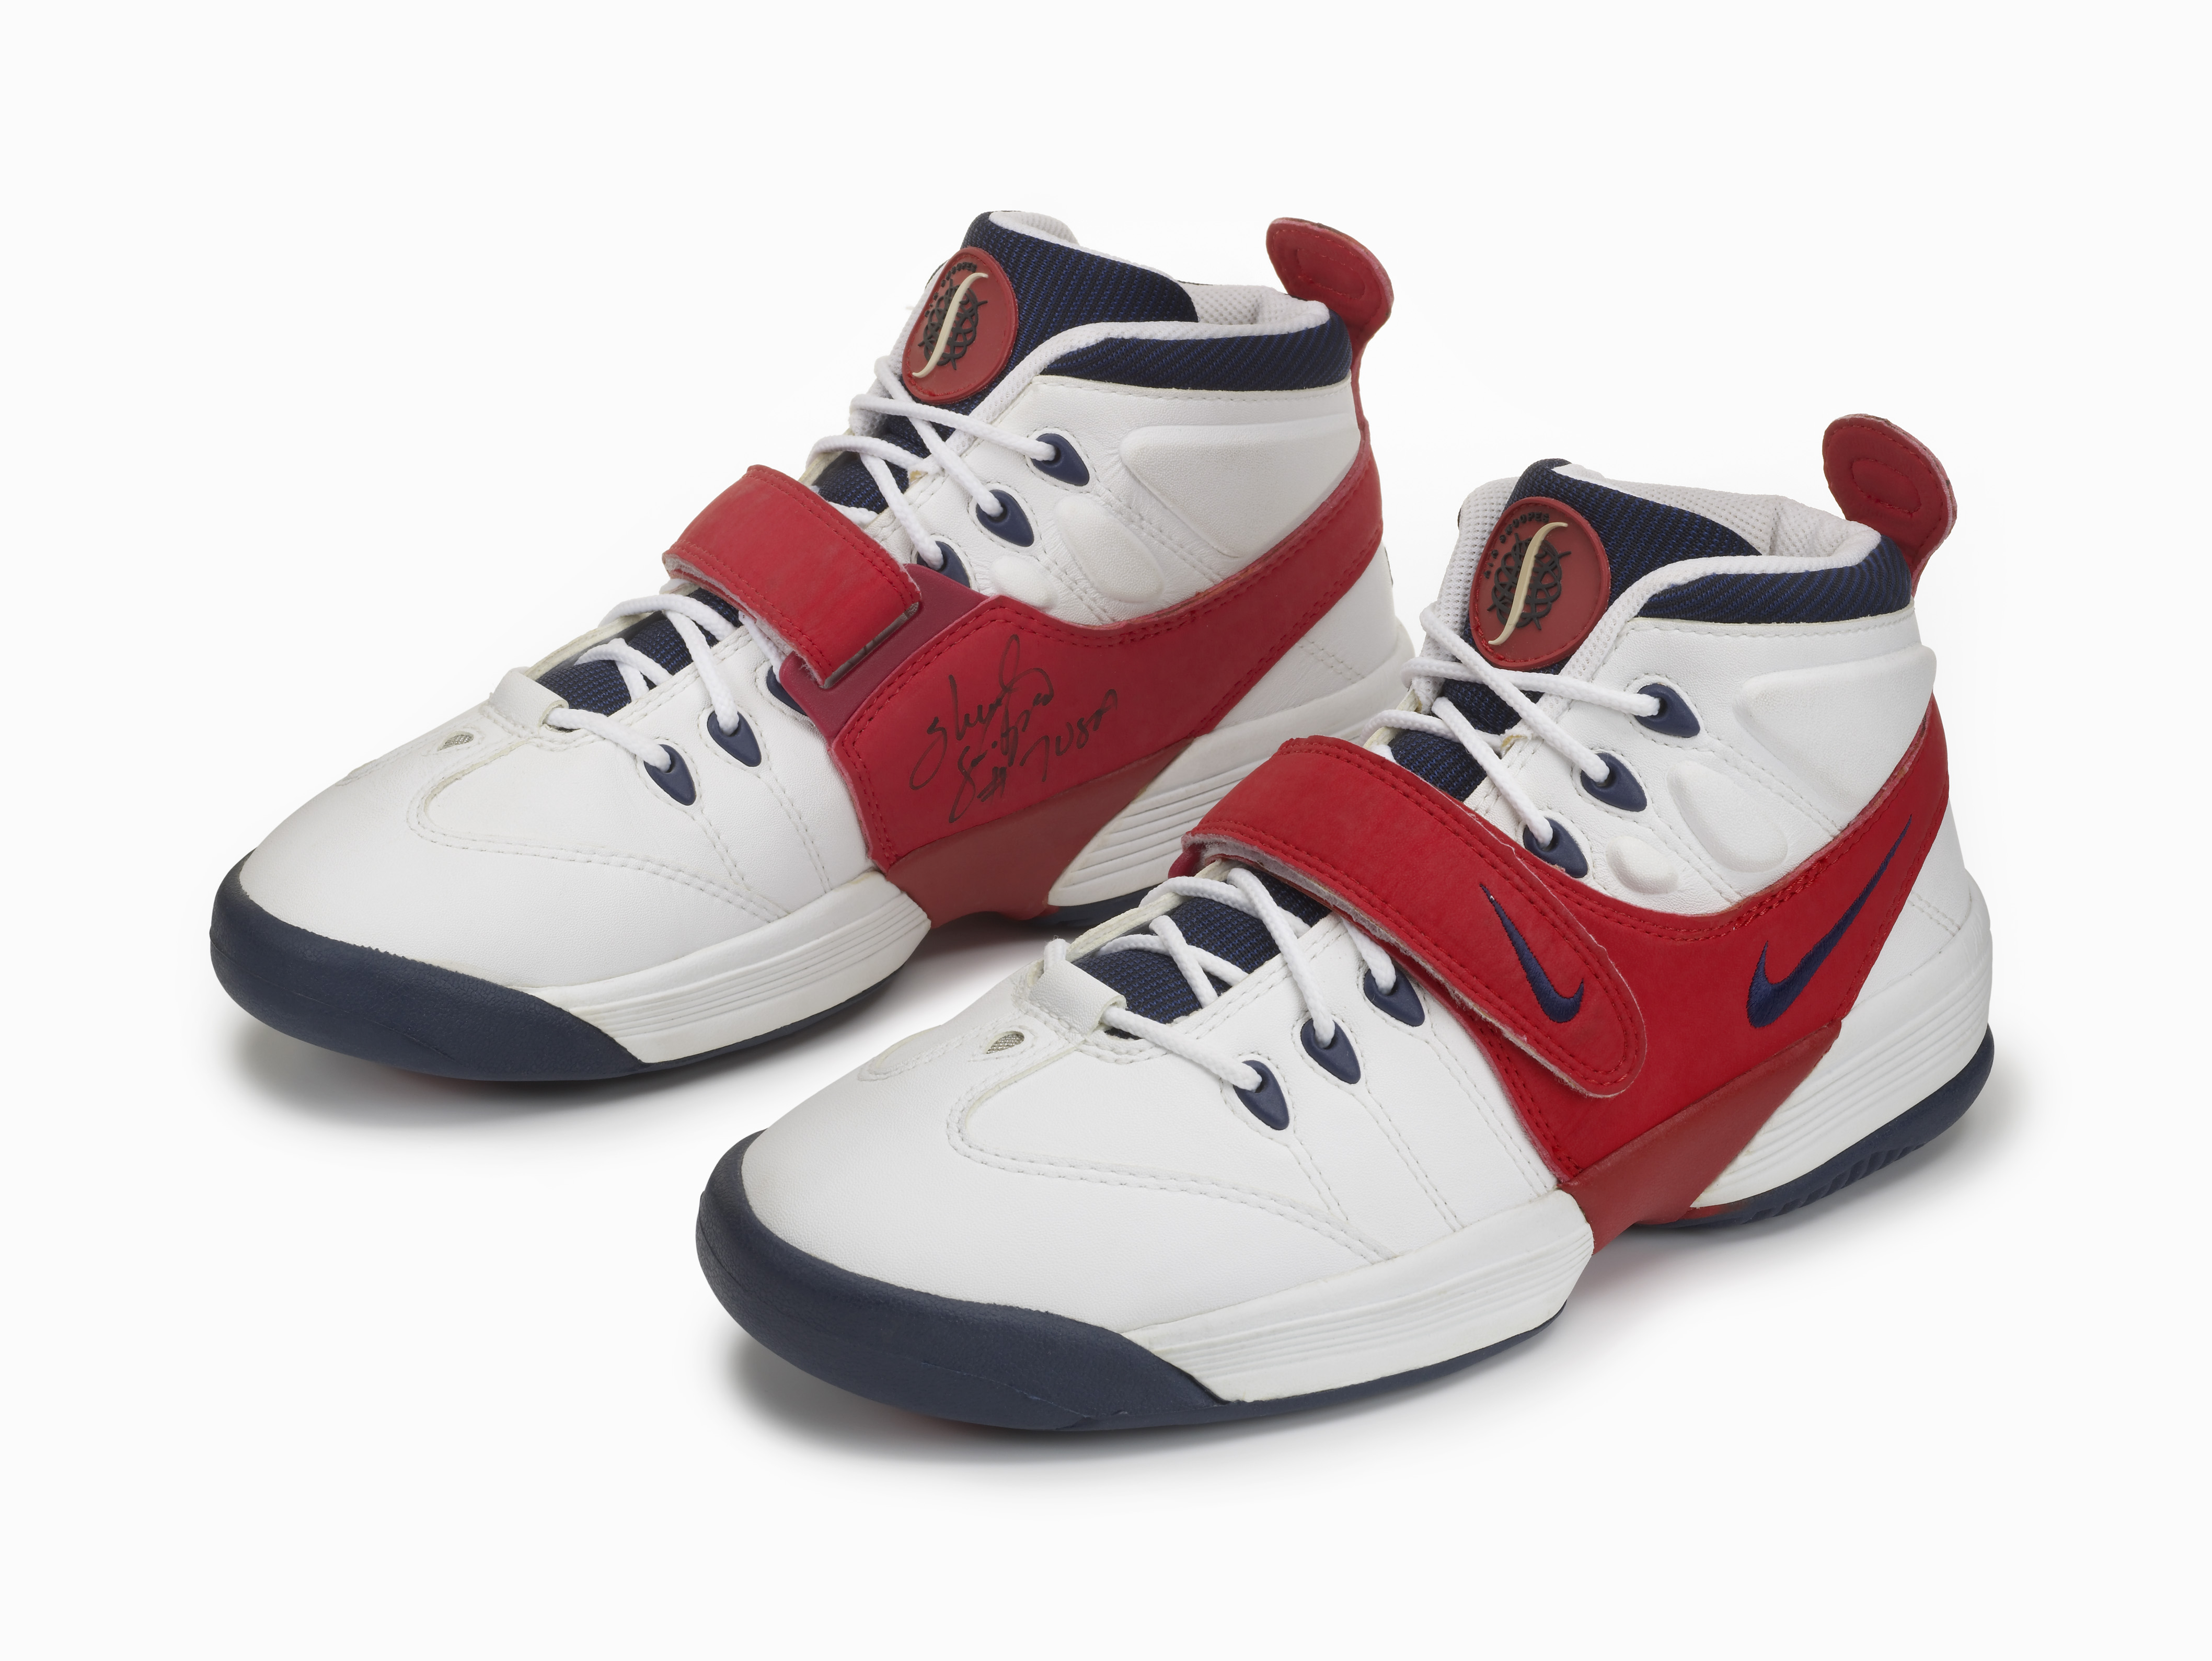 nike basketball 1992 2012 20 designs that changed the game nike air ... c0c37c5c9f83